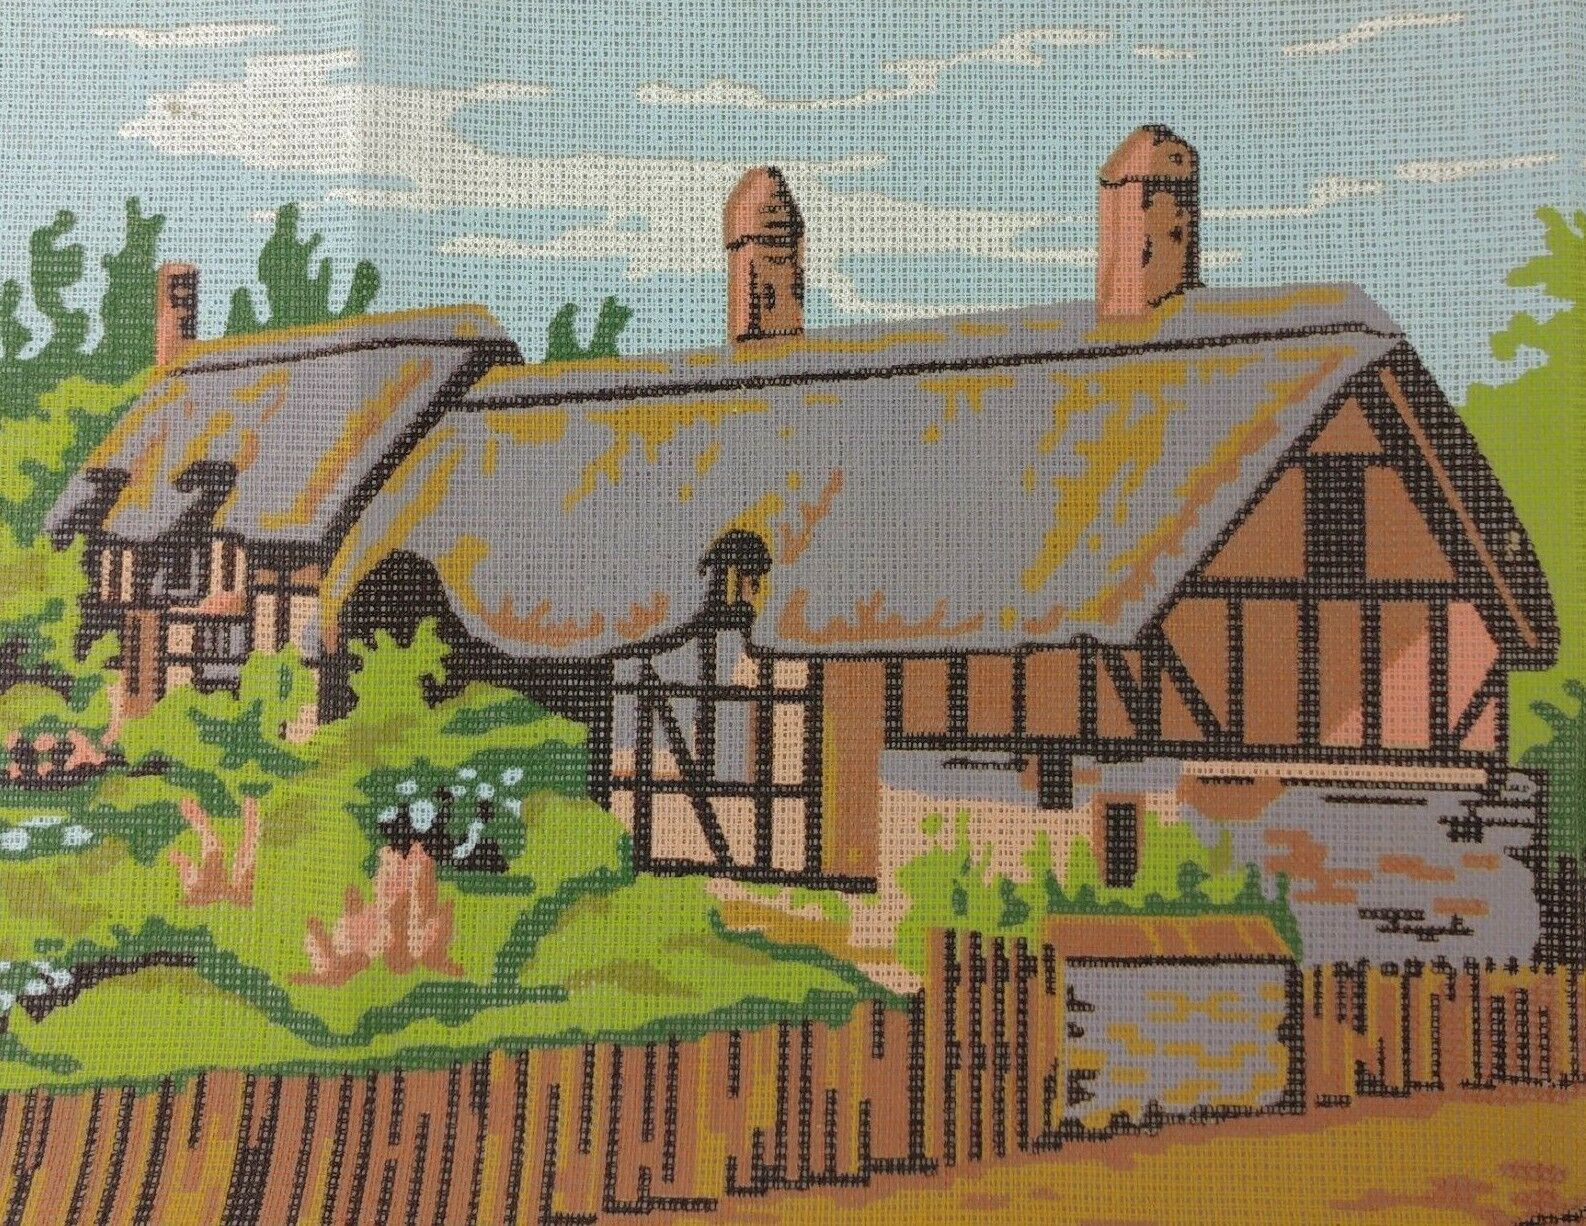 Primary image for Cottage Needlepoint Kit Twilleys of Stamford Thatched Roof Wool UK Anne Hathaway